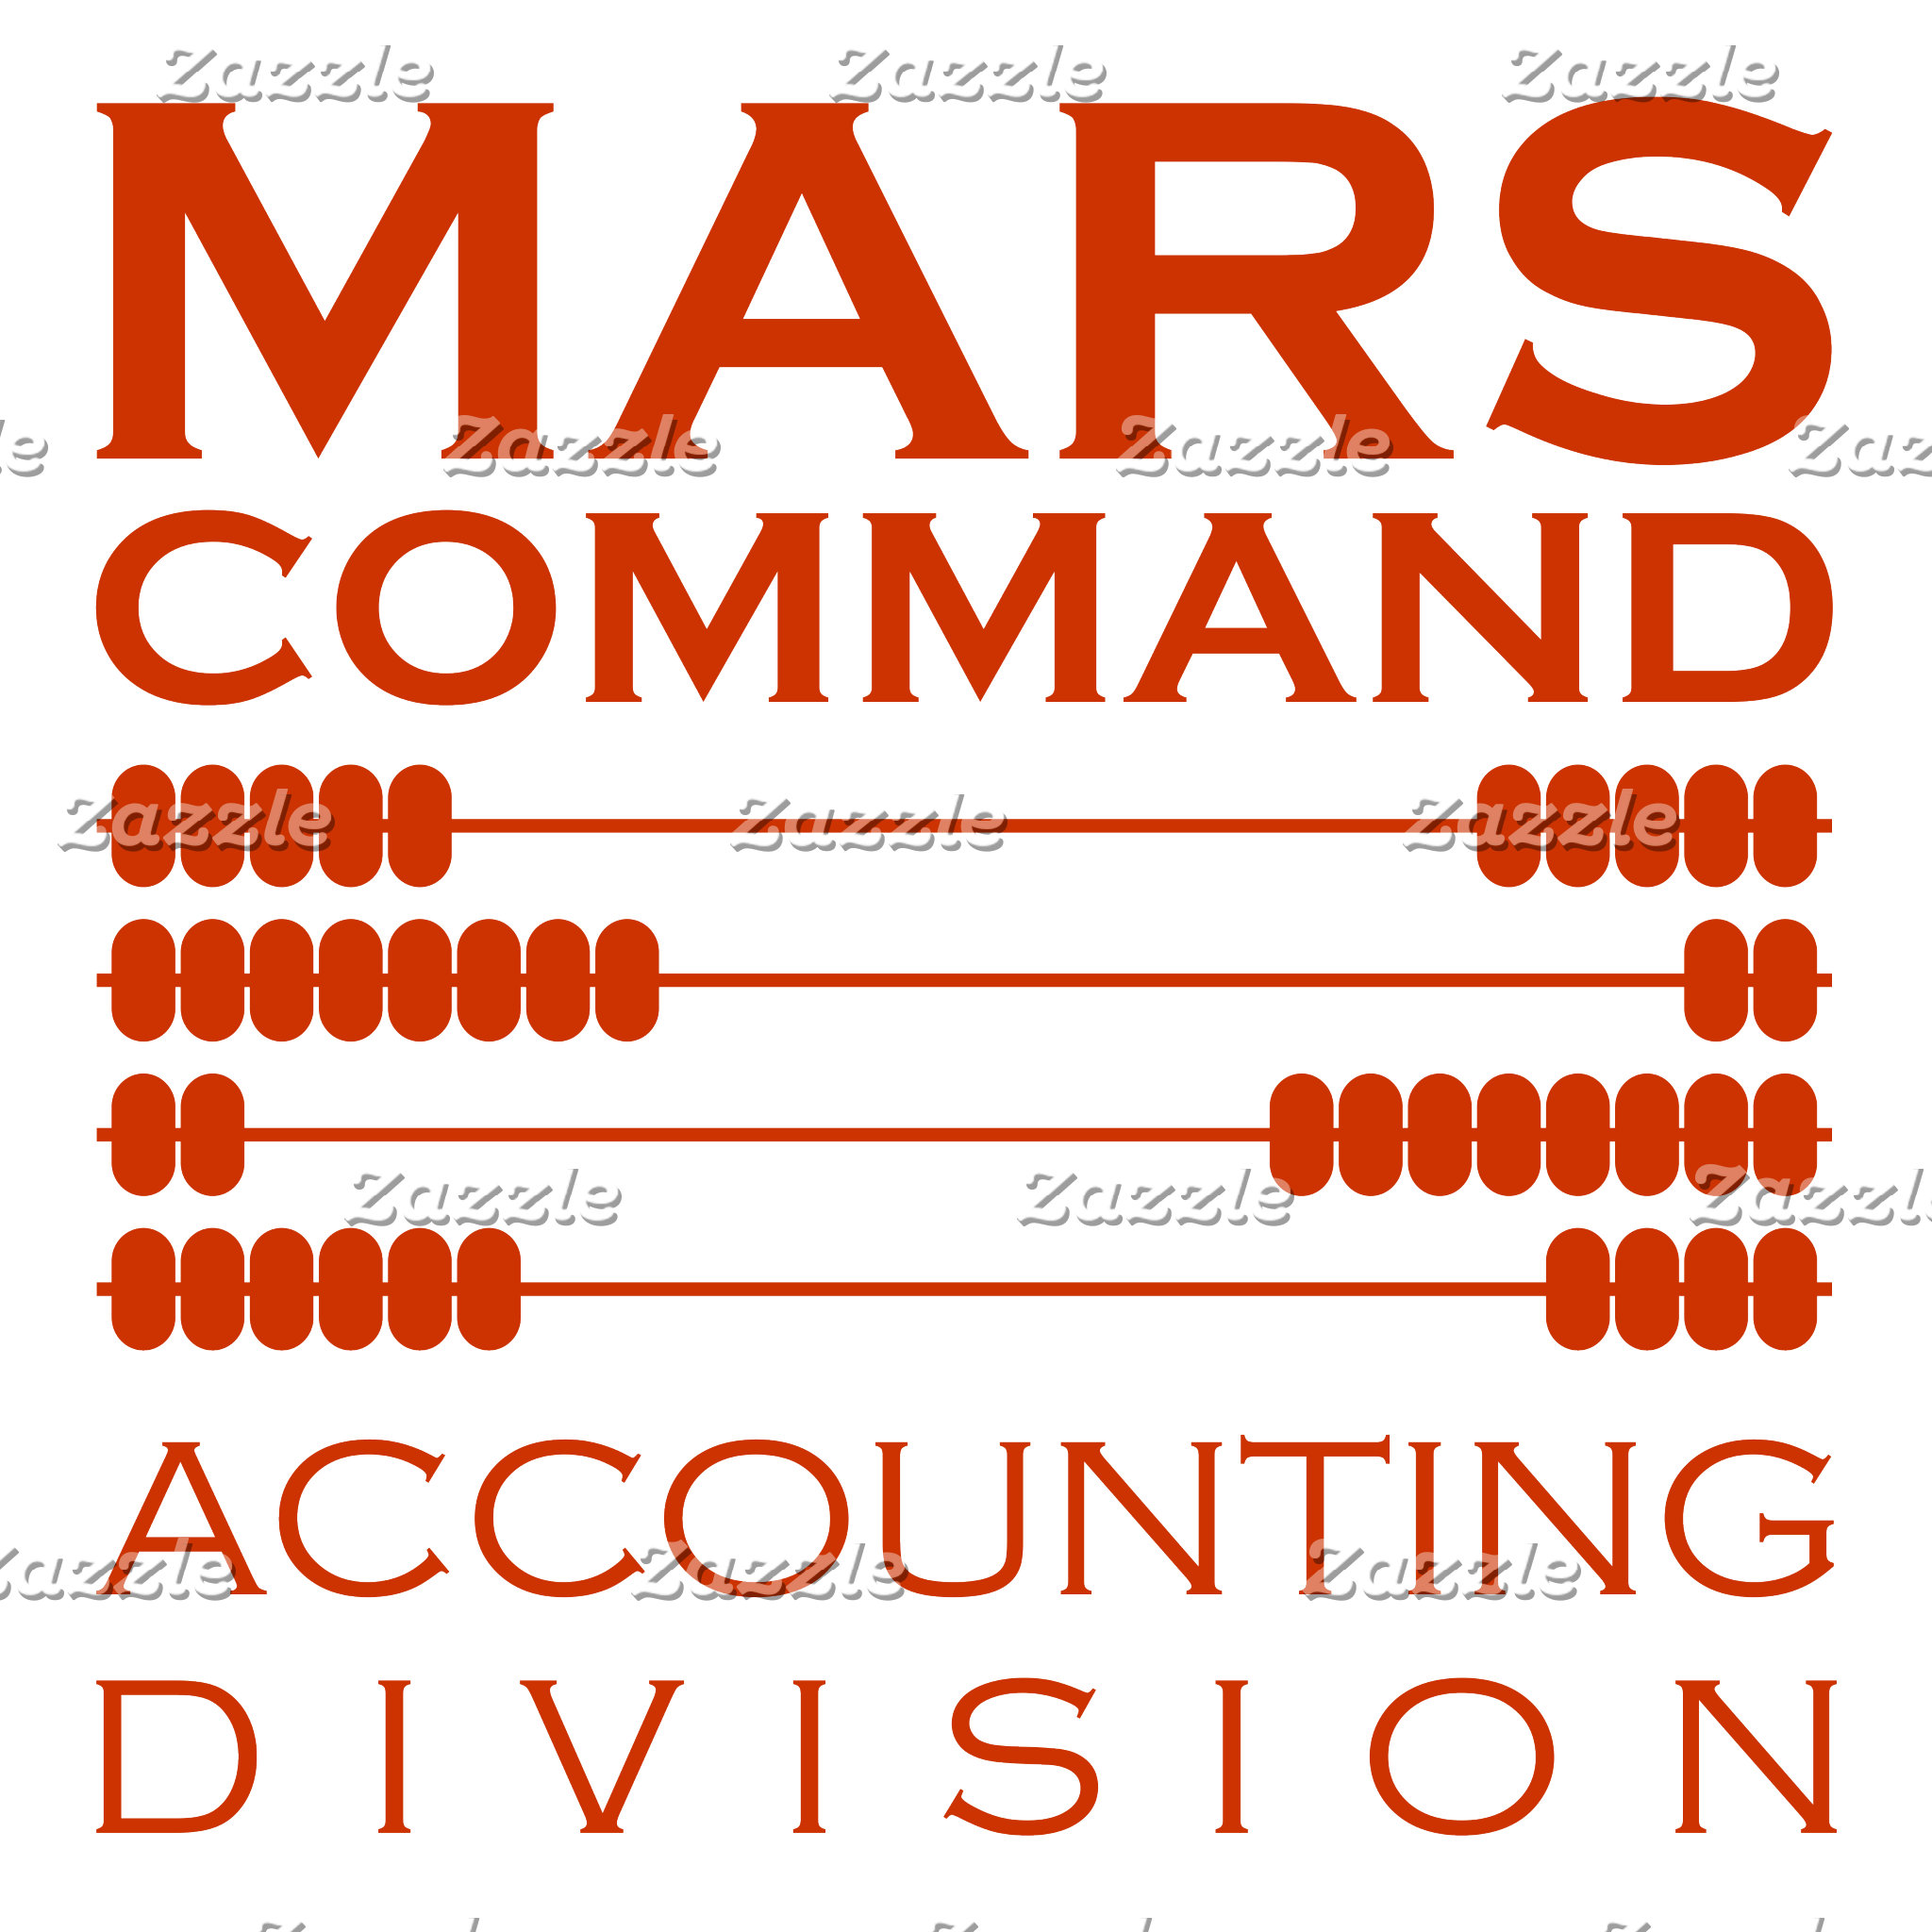 Mars Command Accounting Division